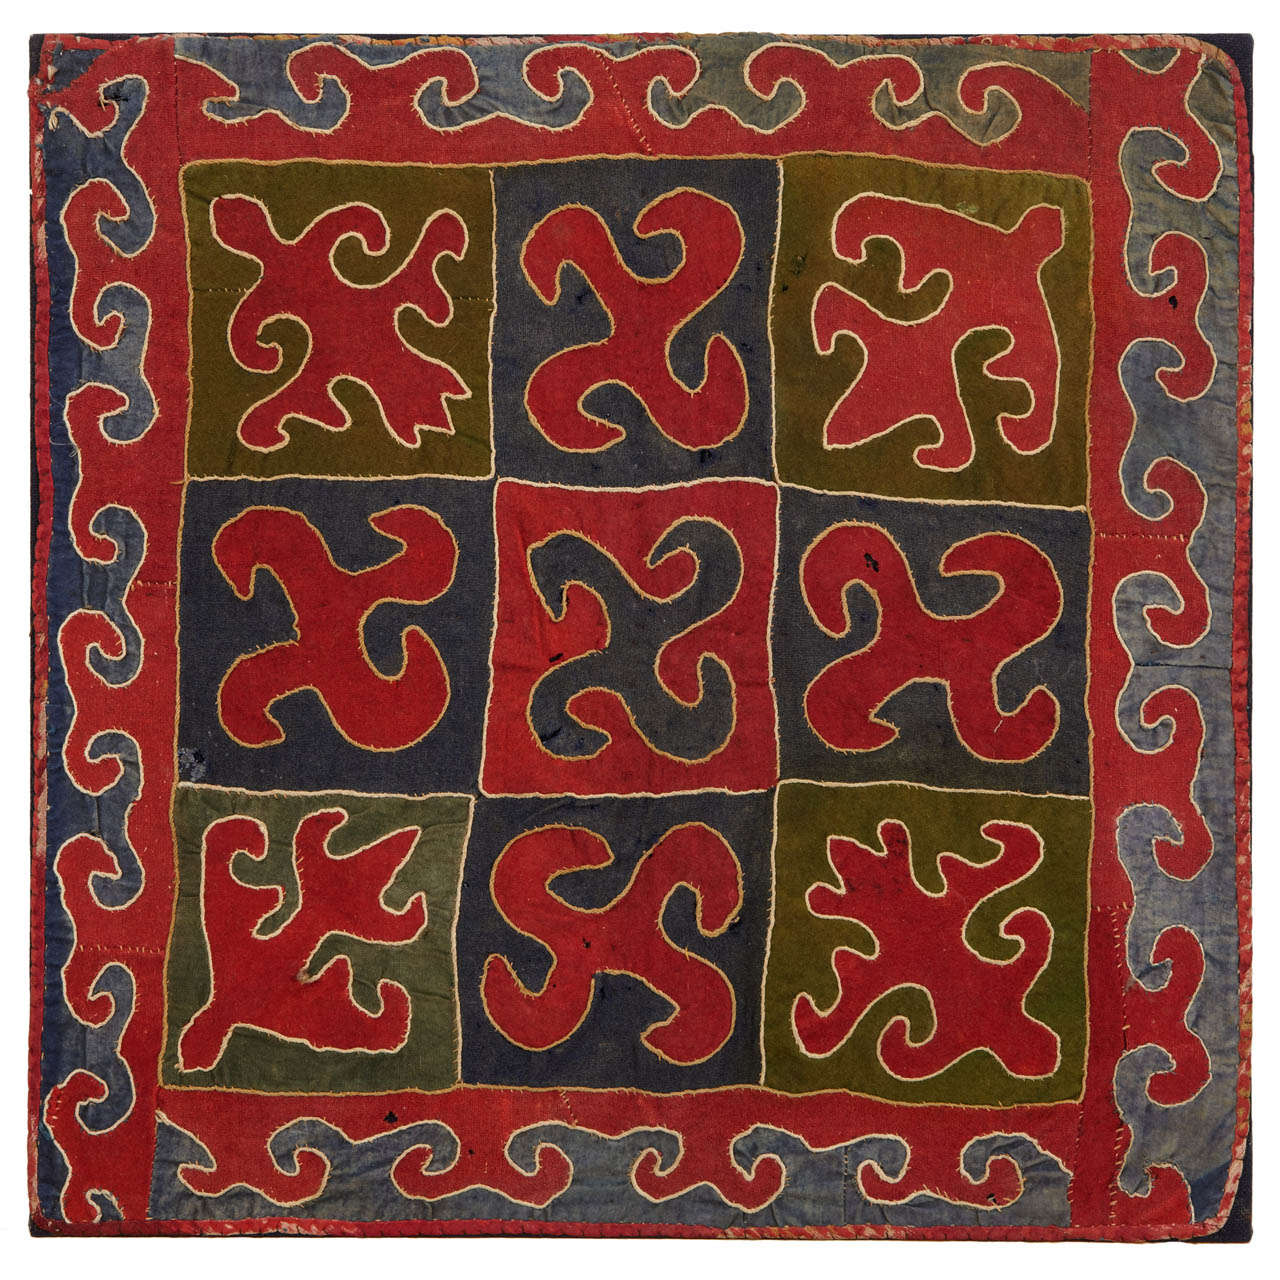 Antique Kirghiz Embroidered Textile